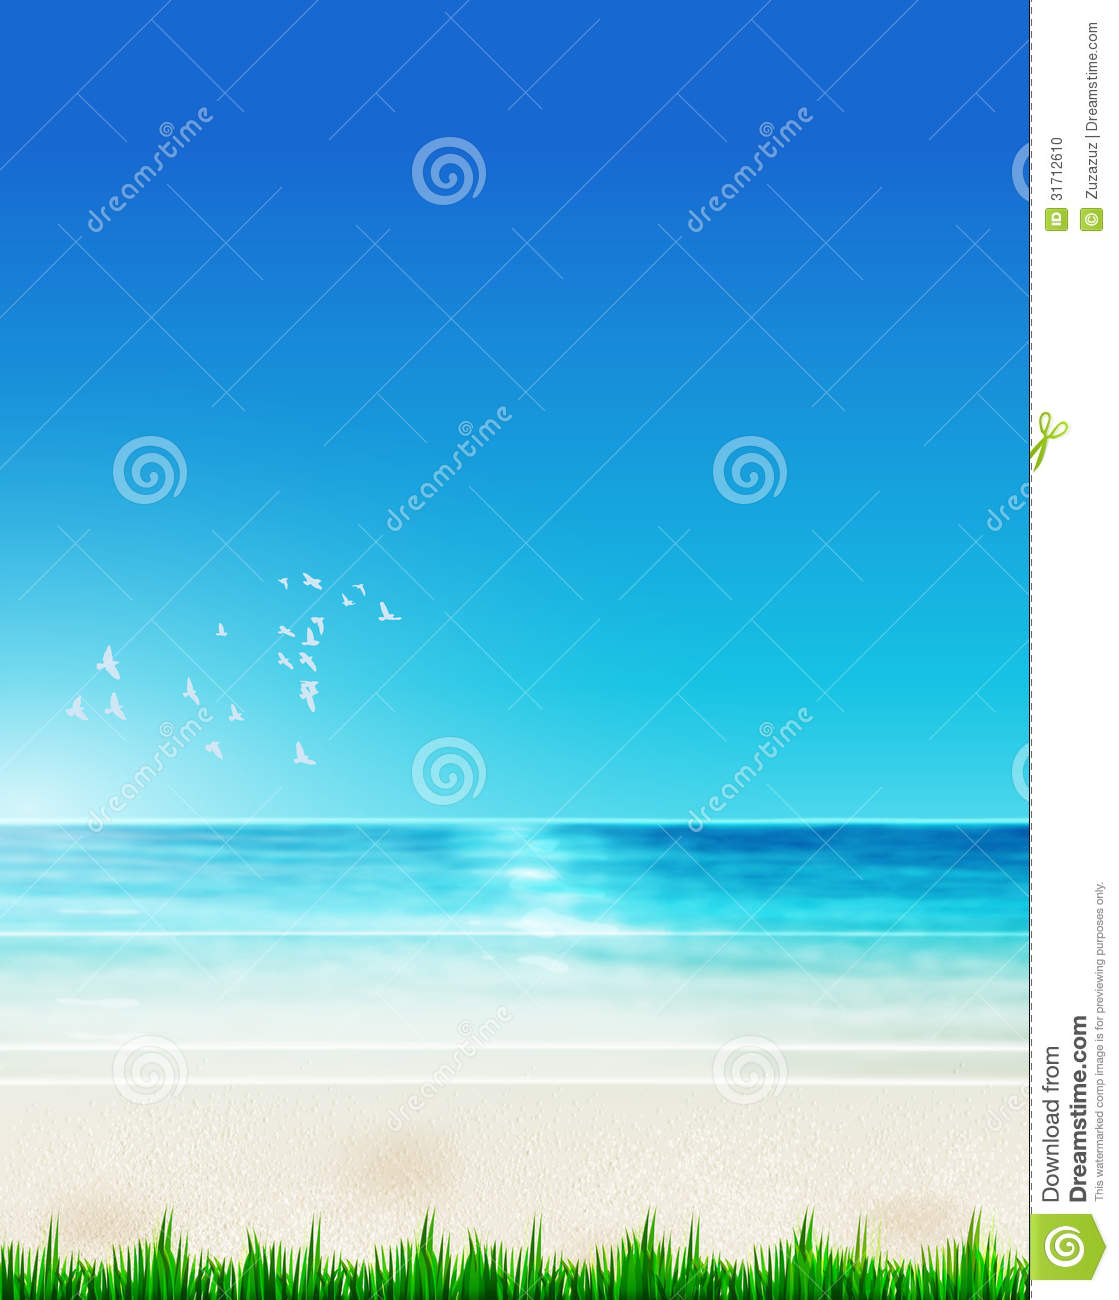 Tropical Islands In The Sand together with Sunset Wall Mural Wallpaper also Royalty Free Stock Images Tropical Village Silhouette Buildings Isolated White Background One Shape One Color Vector Image39019929 besides Inspirational Tree Quotes in addition Stock Photo Tropical Summer Fashion Girl Pineapple Vanilla Style Image51865174. on palm beach style architecture